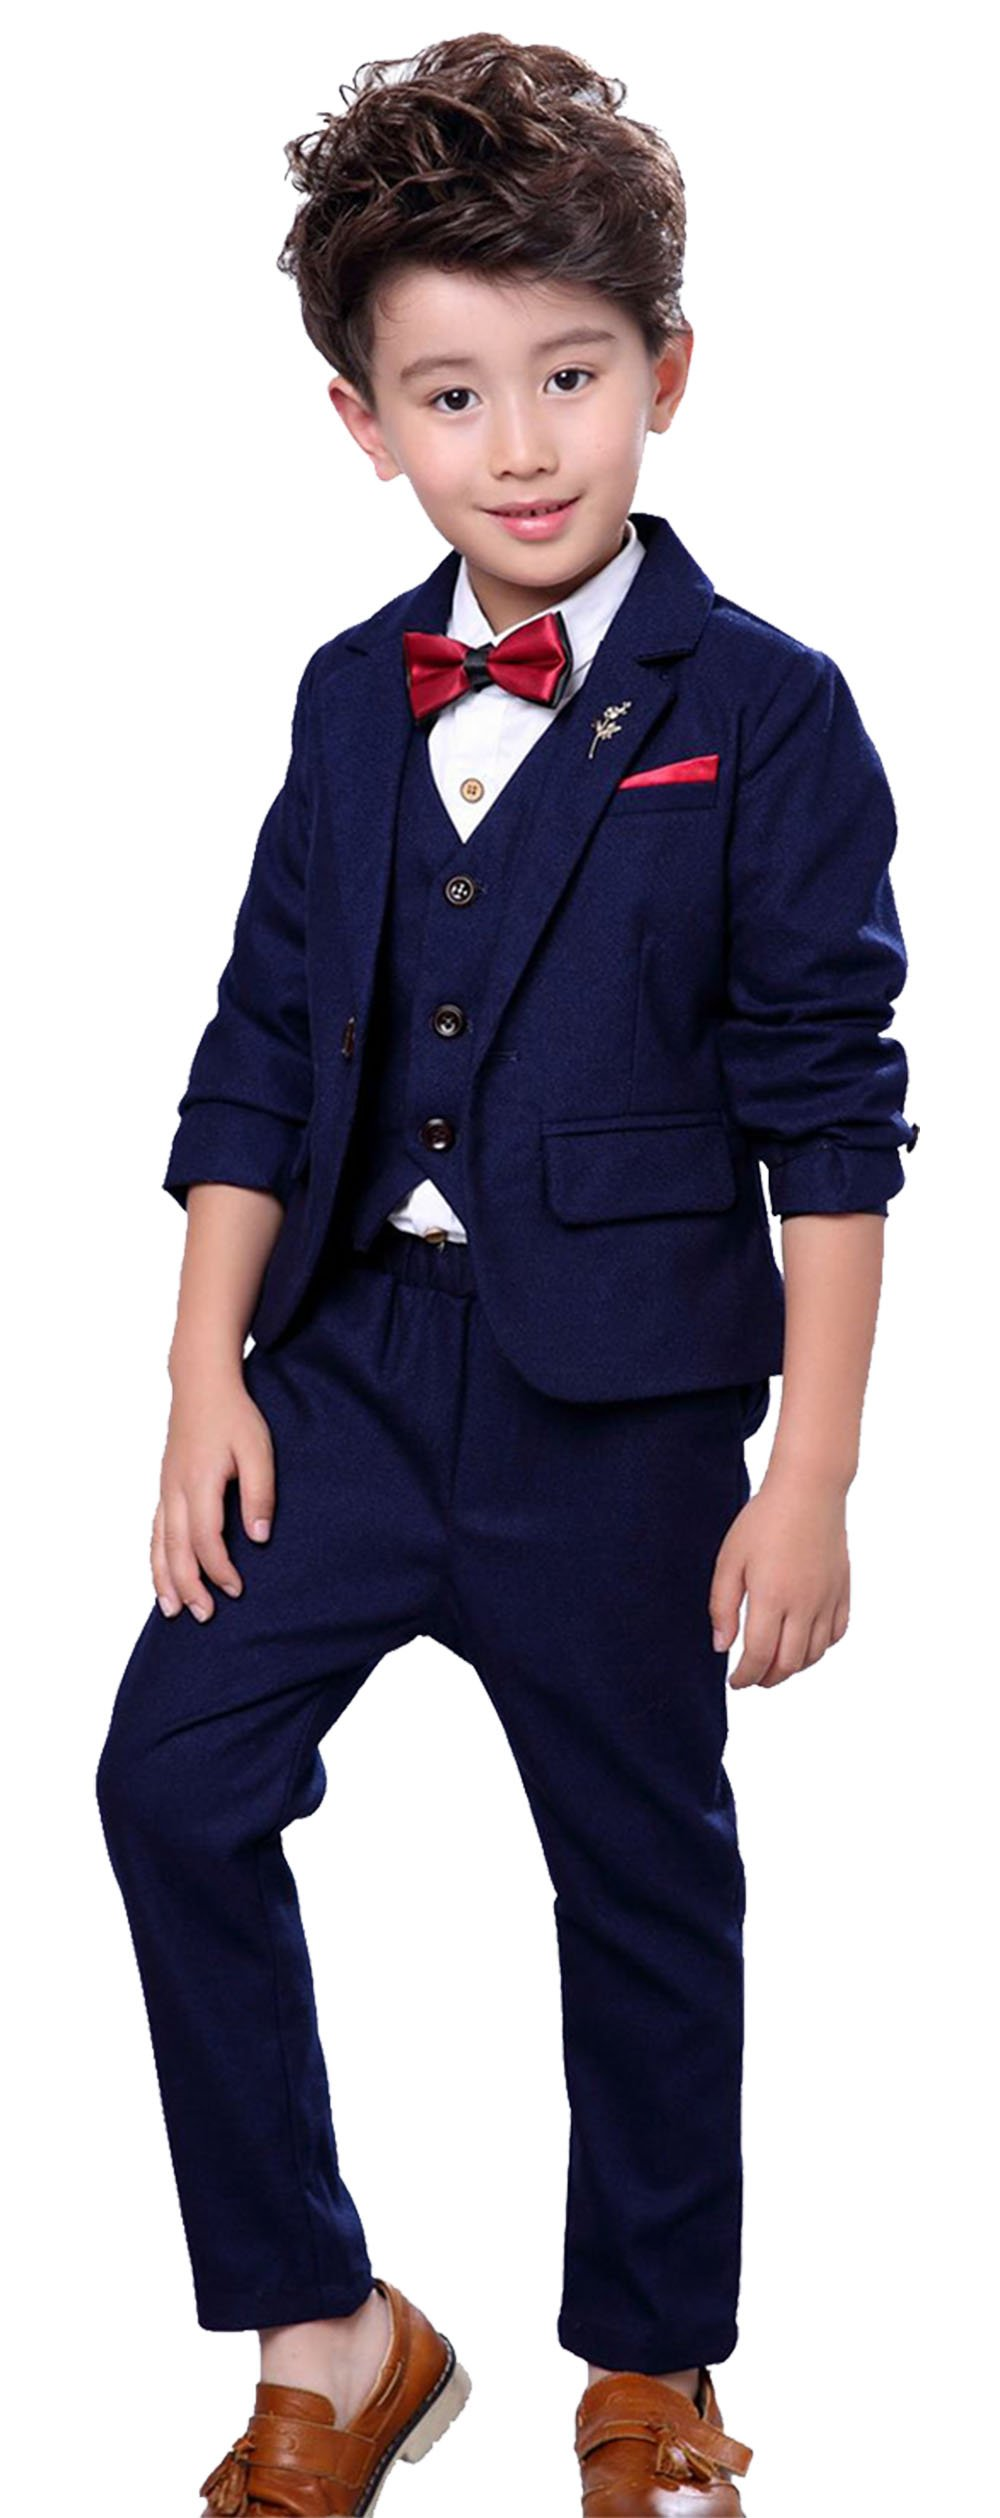 Children 3 Pcs Suit Set Vintage Plaid British Style Formal Suit Set for Wedding Party Classic Tuxedo Suit Blue 3T